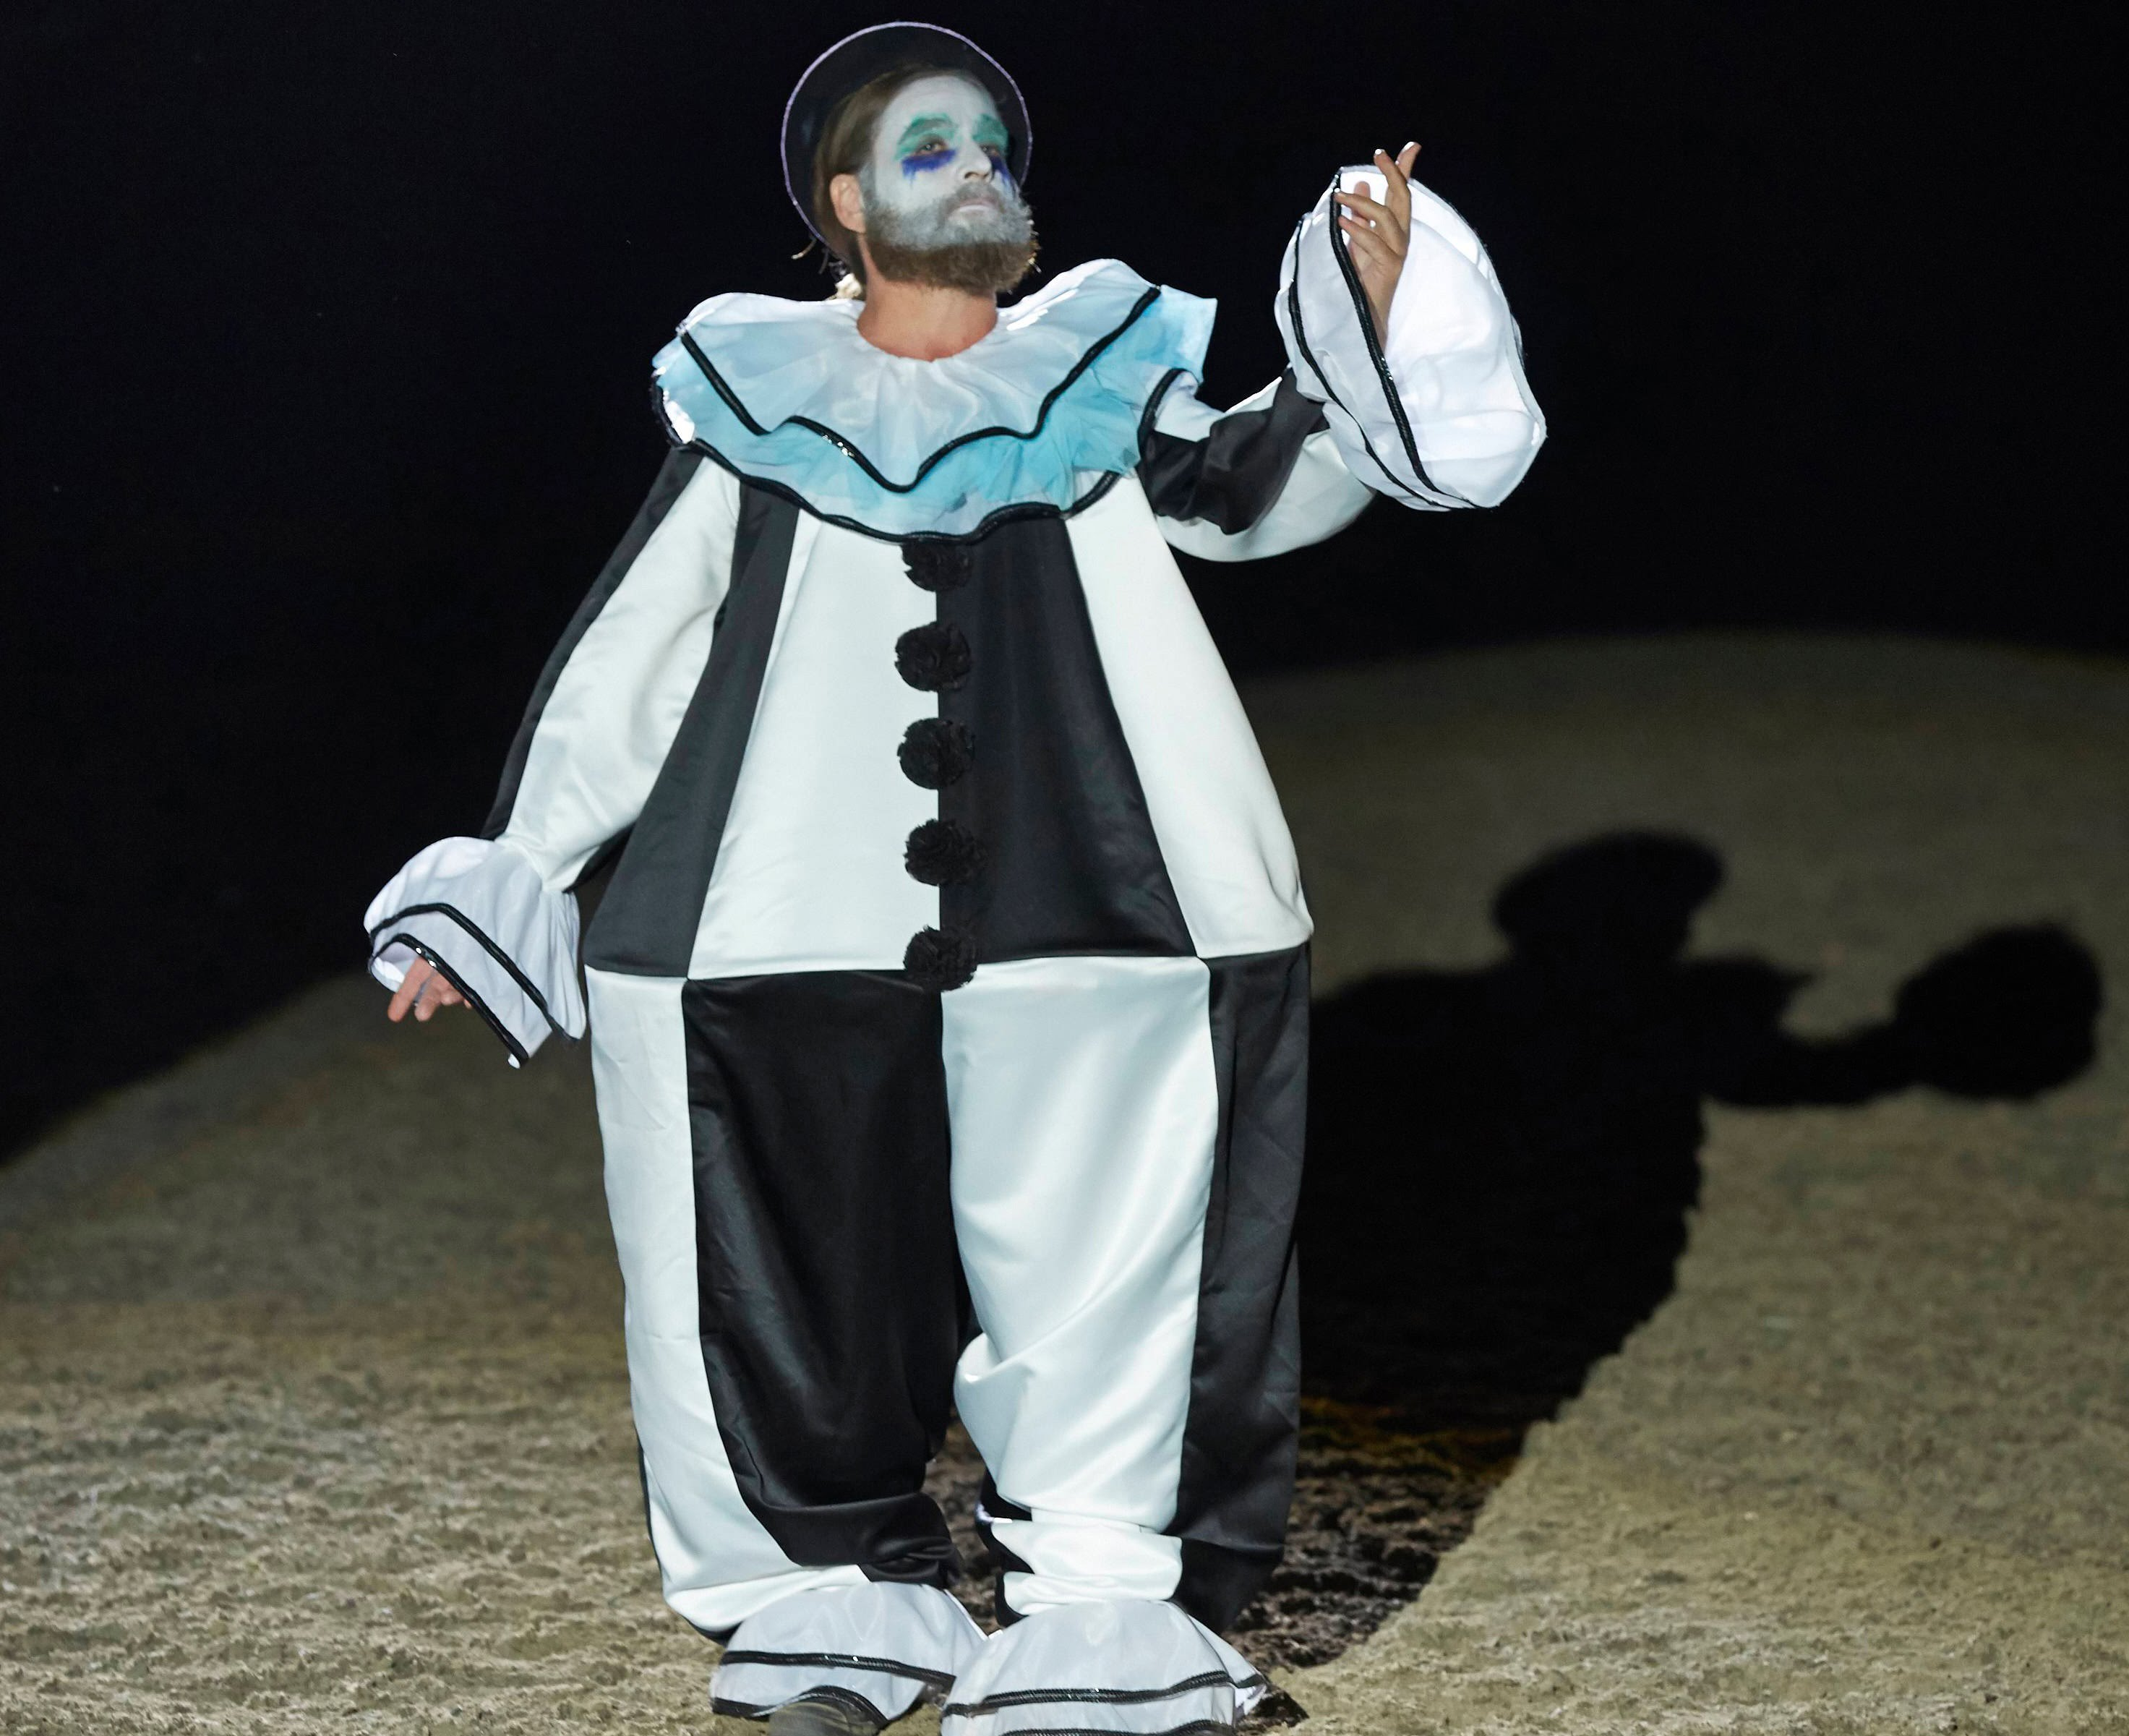 baskets-filming-locations-clown-rodeo